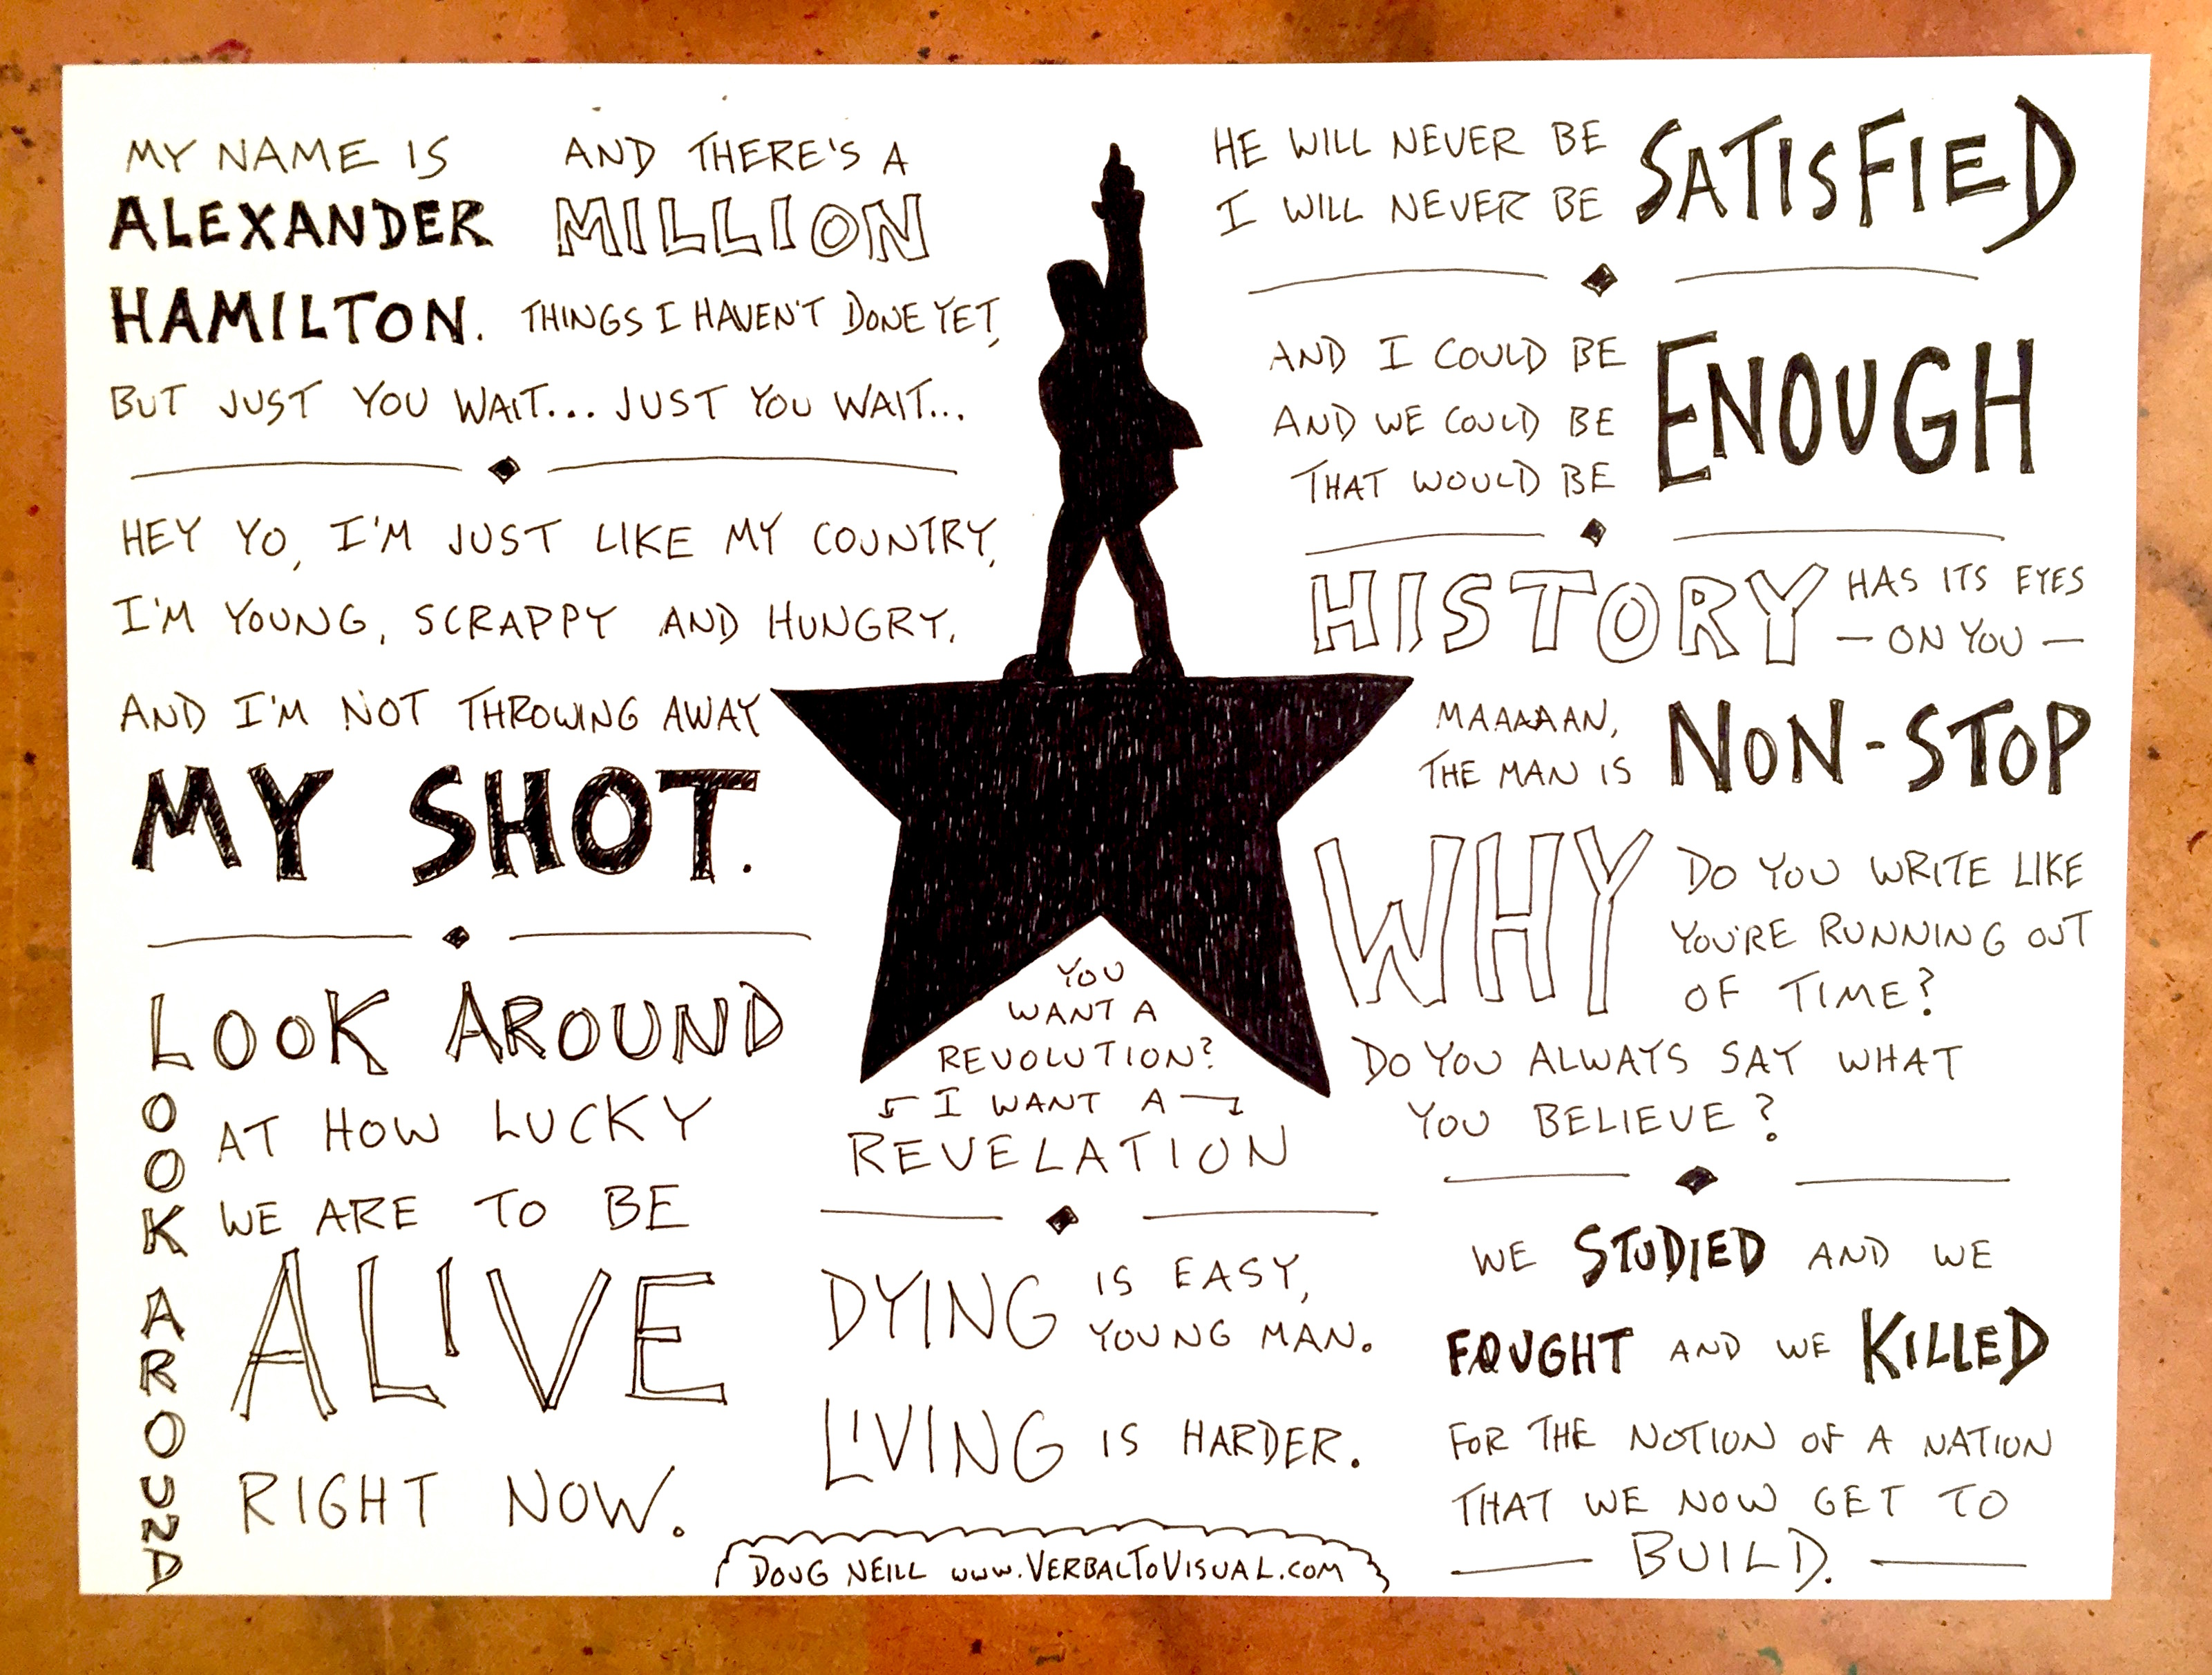 Hamilton Lyrics How A Single Phrase Opens An Entire World